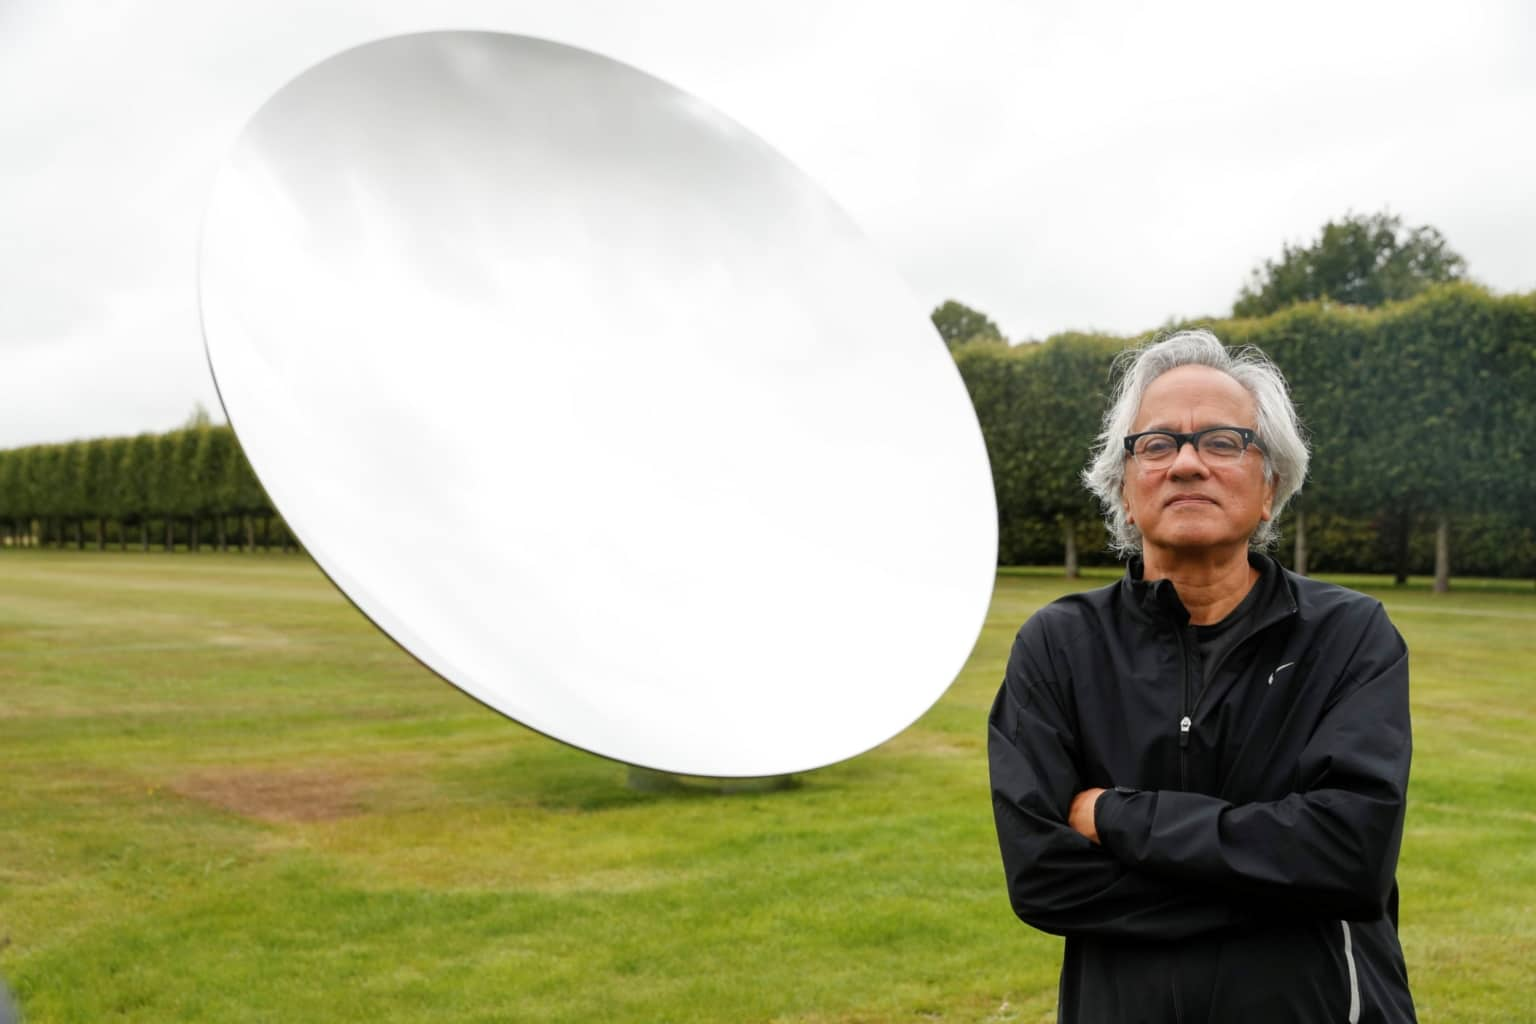 British-Indian artist Anish Kapoor poses with his sculpture in the gardens at Houghton Hall in Norfolk